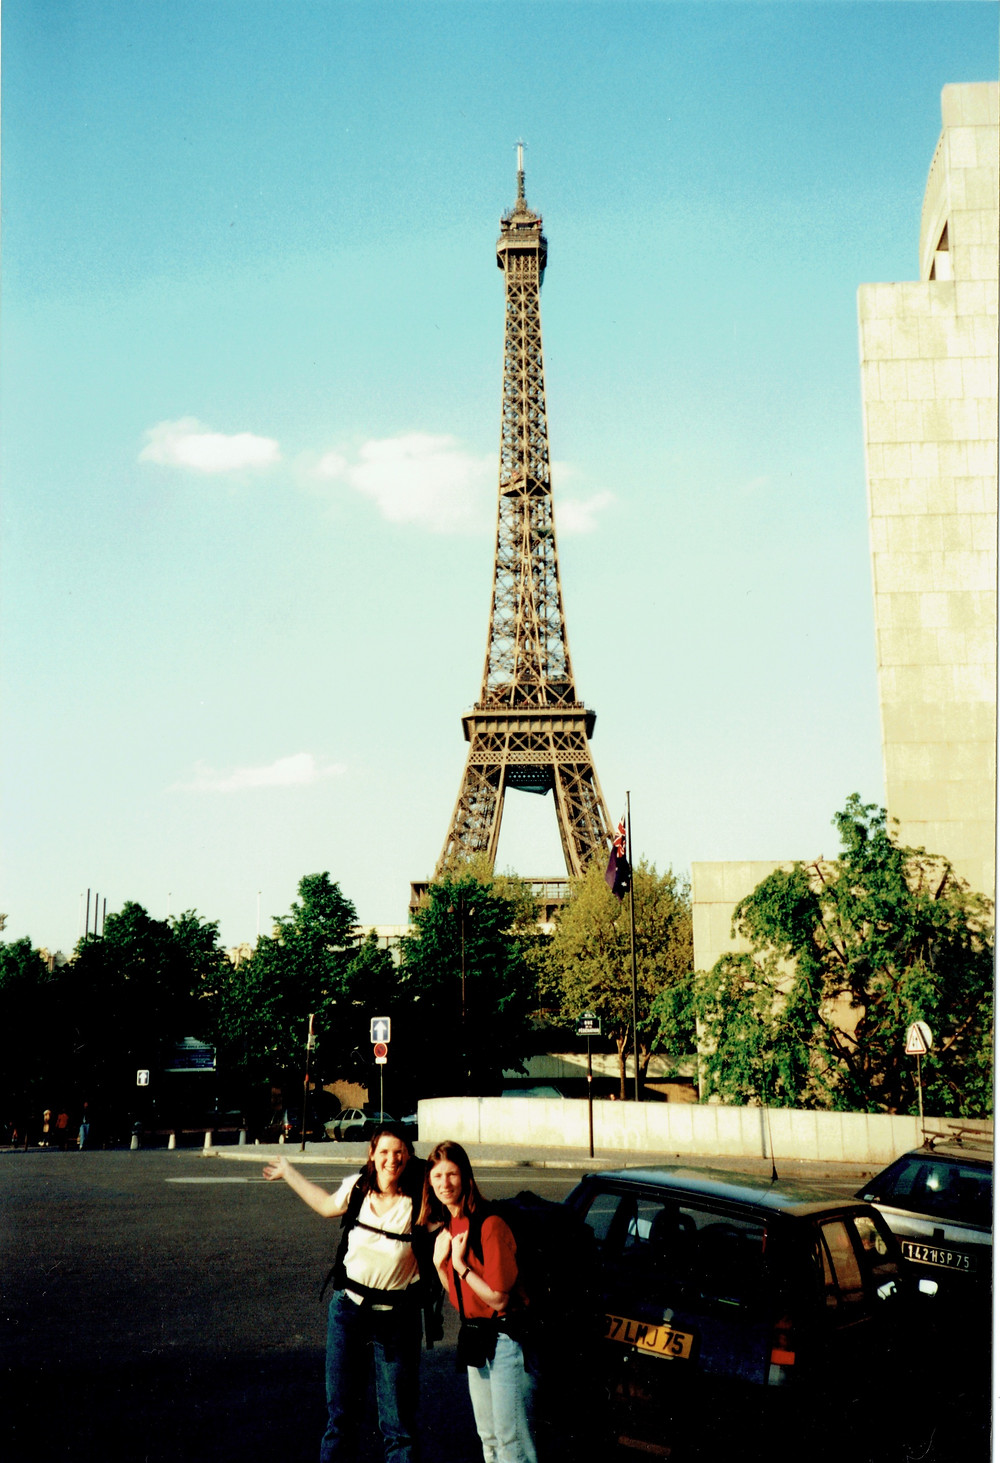 Two Canadian women standing in front of the Eiffel Tower in Paris